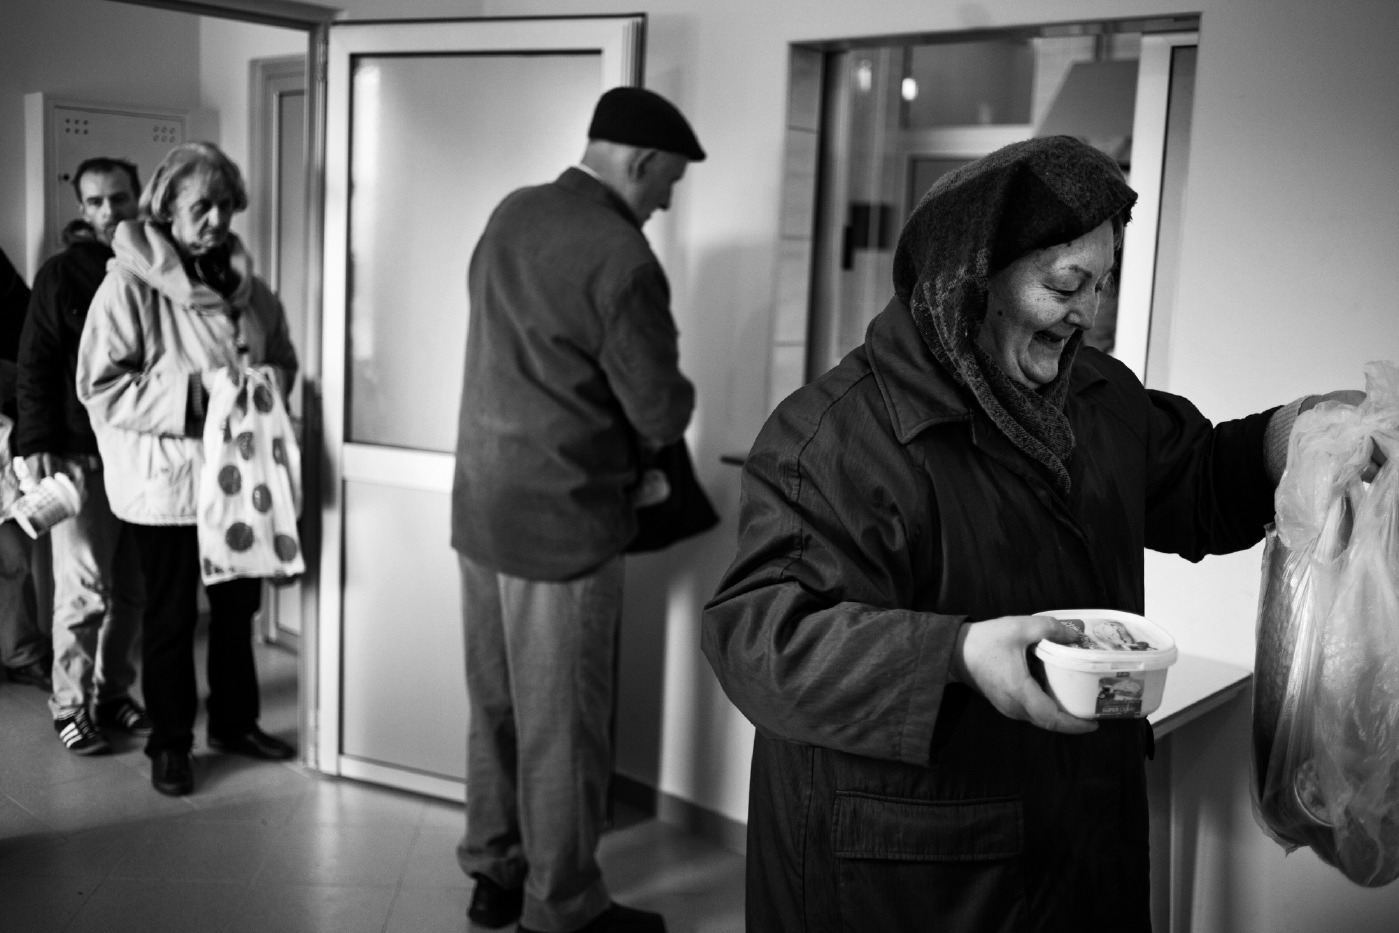 """Some people in line to receive food at the headquarters of the Catholic organization """"Saint Antonio"""", in the Dobrinja district. According to the World Bank, 1 in 5 Bosnian lives below the poverty line. Sarajevo, Bosnia and Herzegovina 2014. © Matteo Bastianelli"""